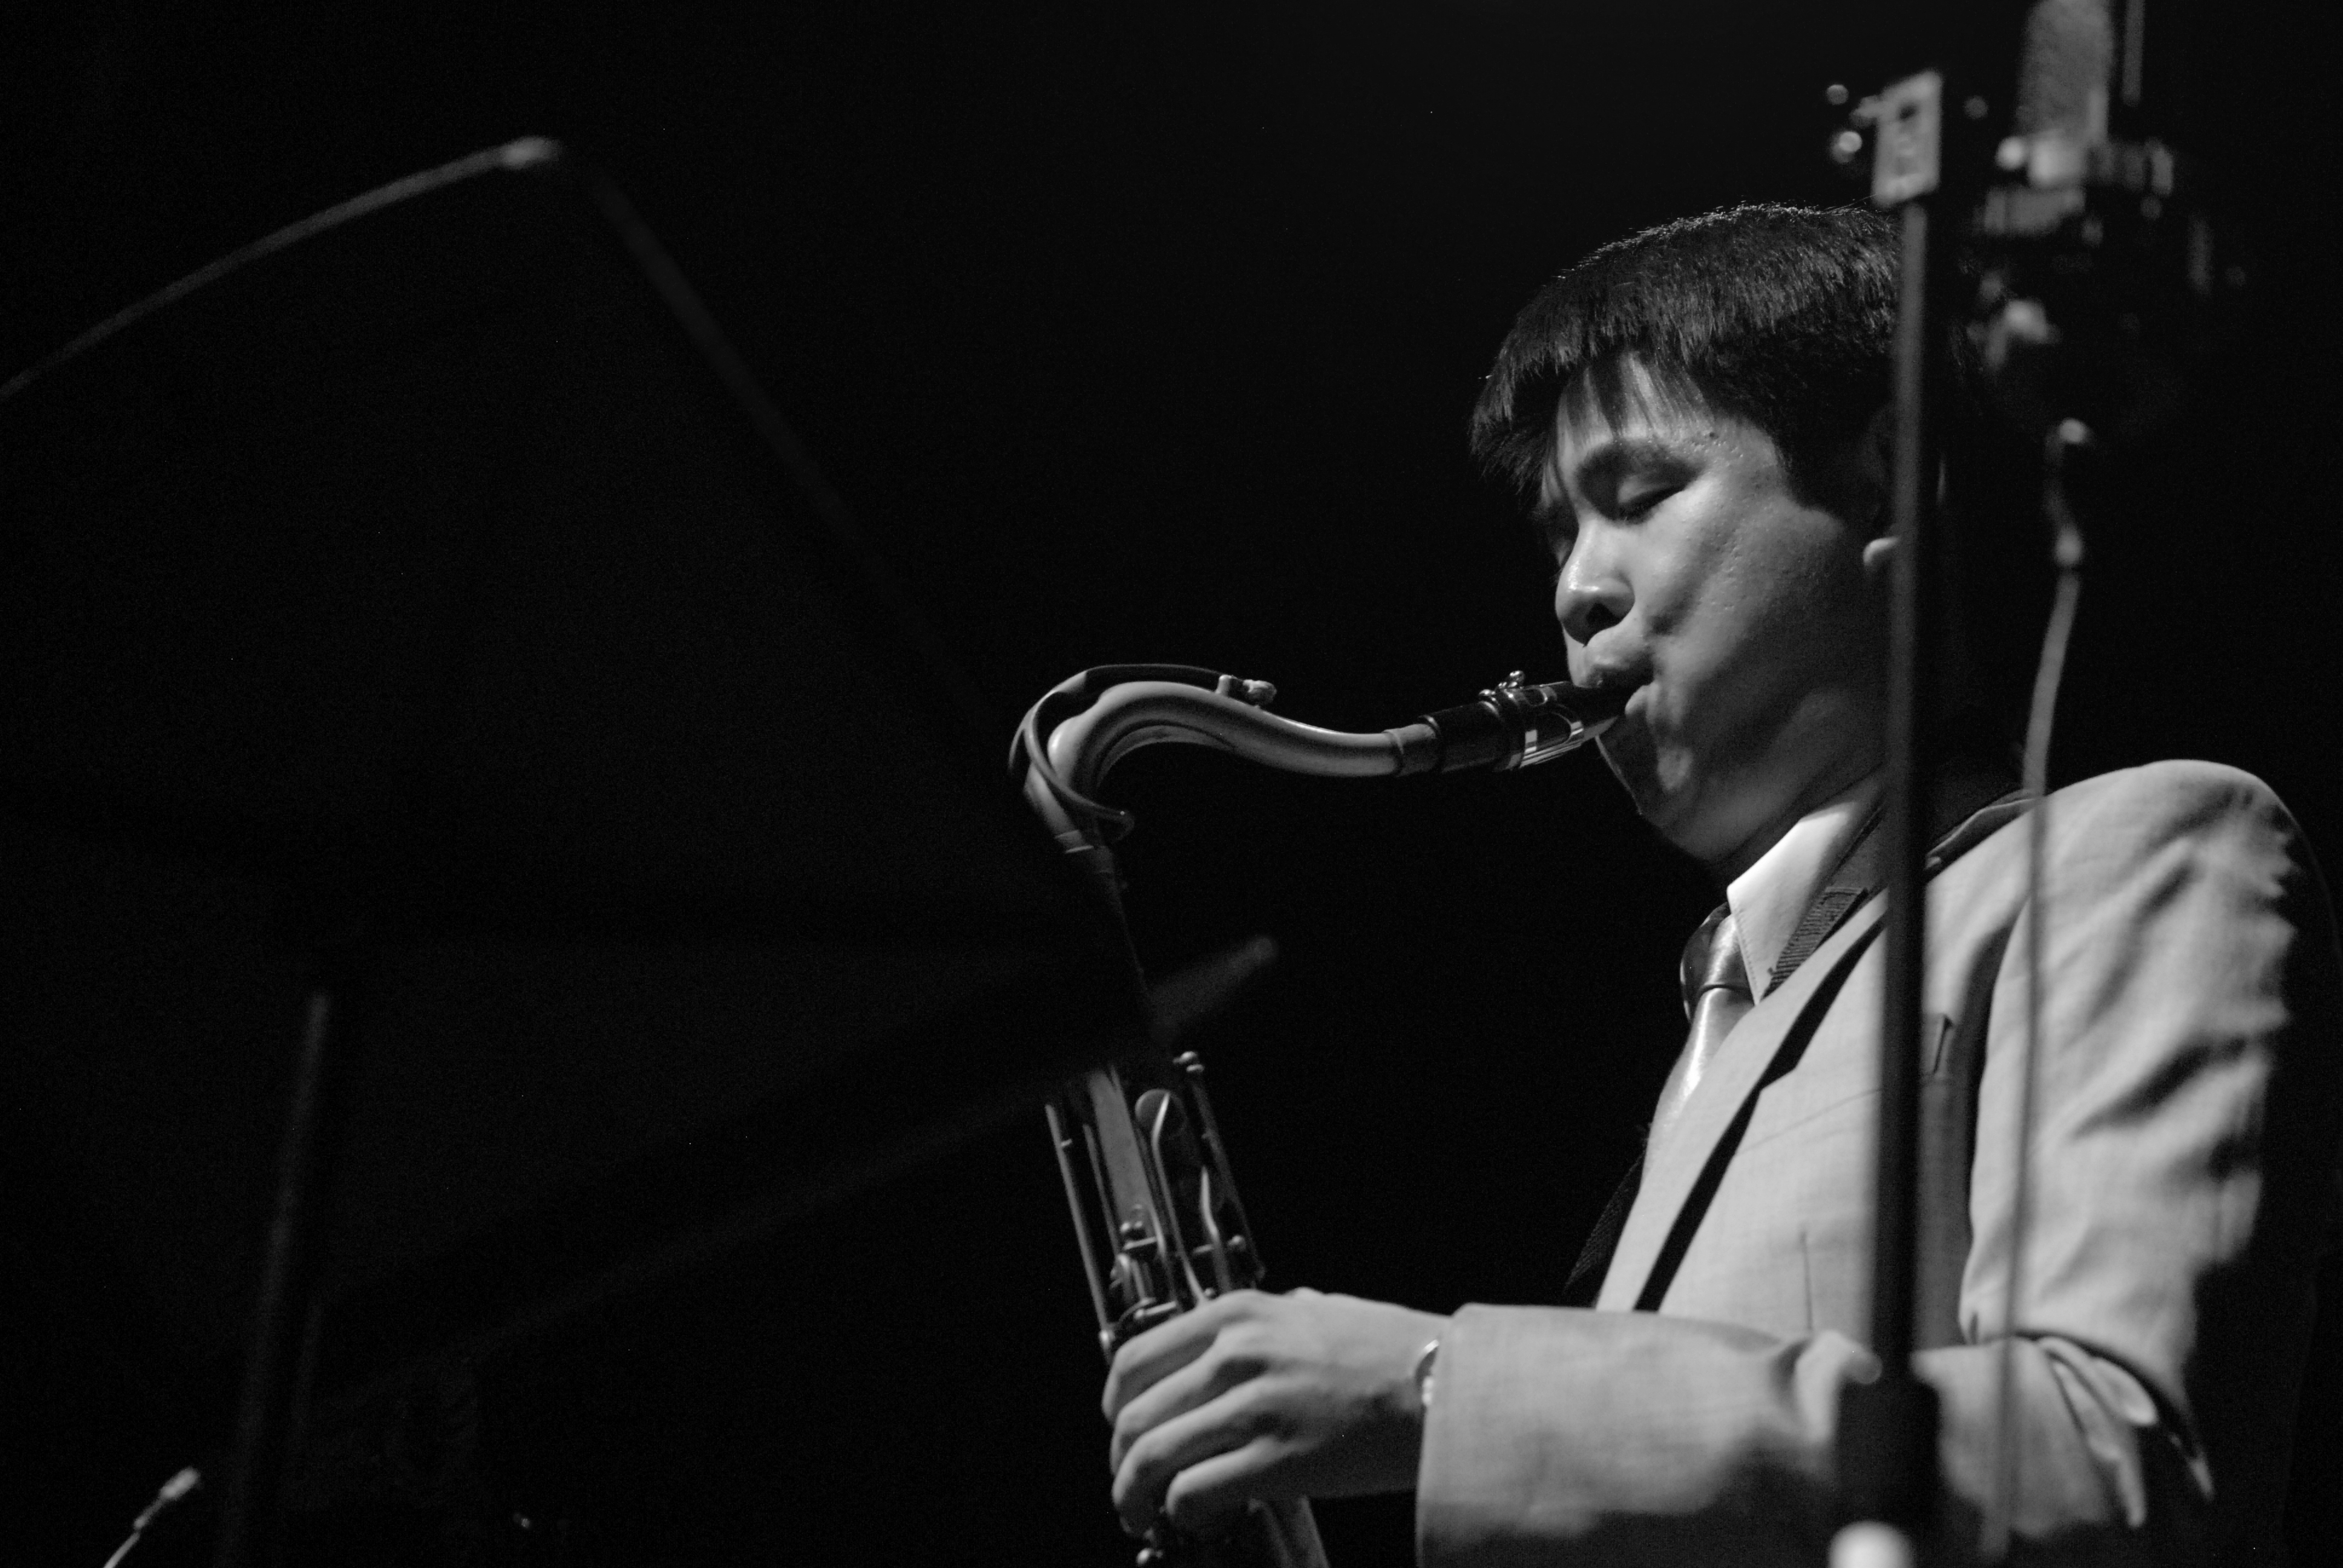 Kevin Sun in Indianapolis (March 2013)